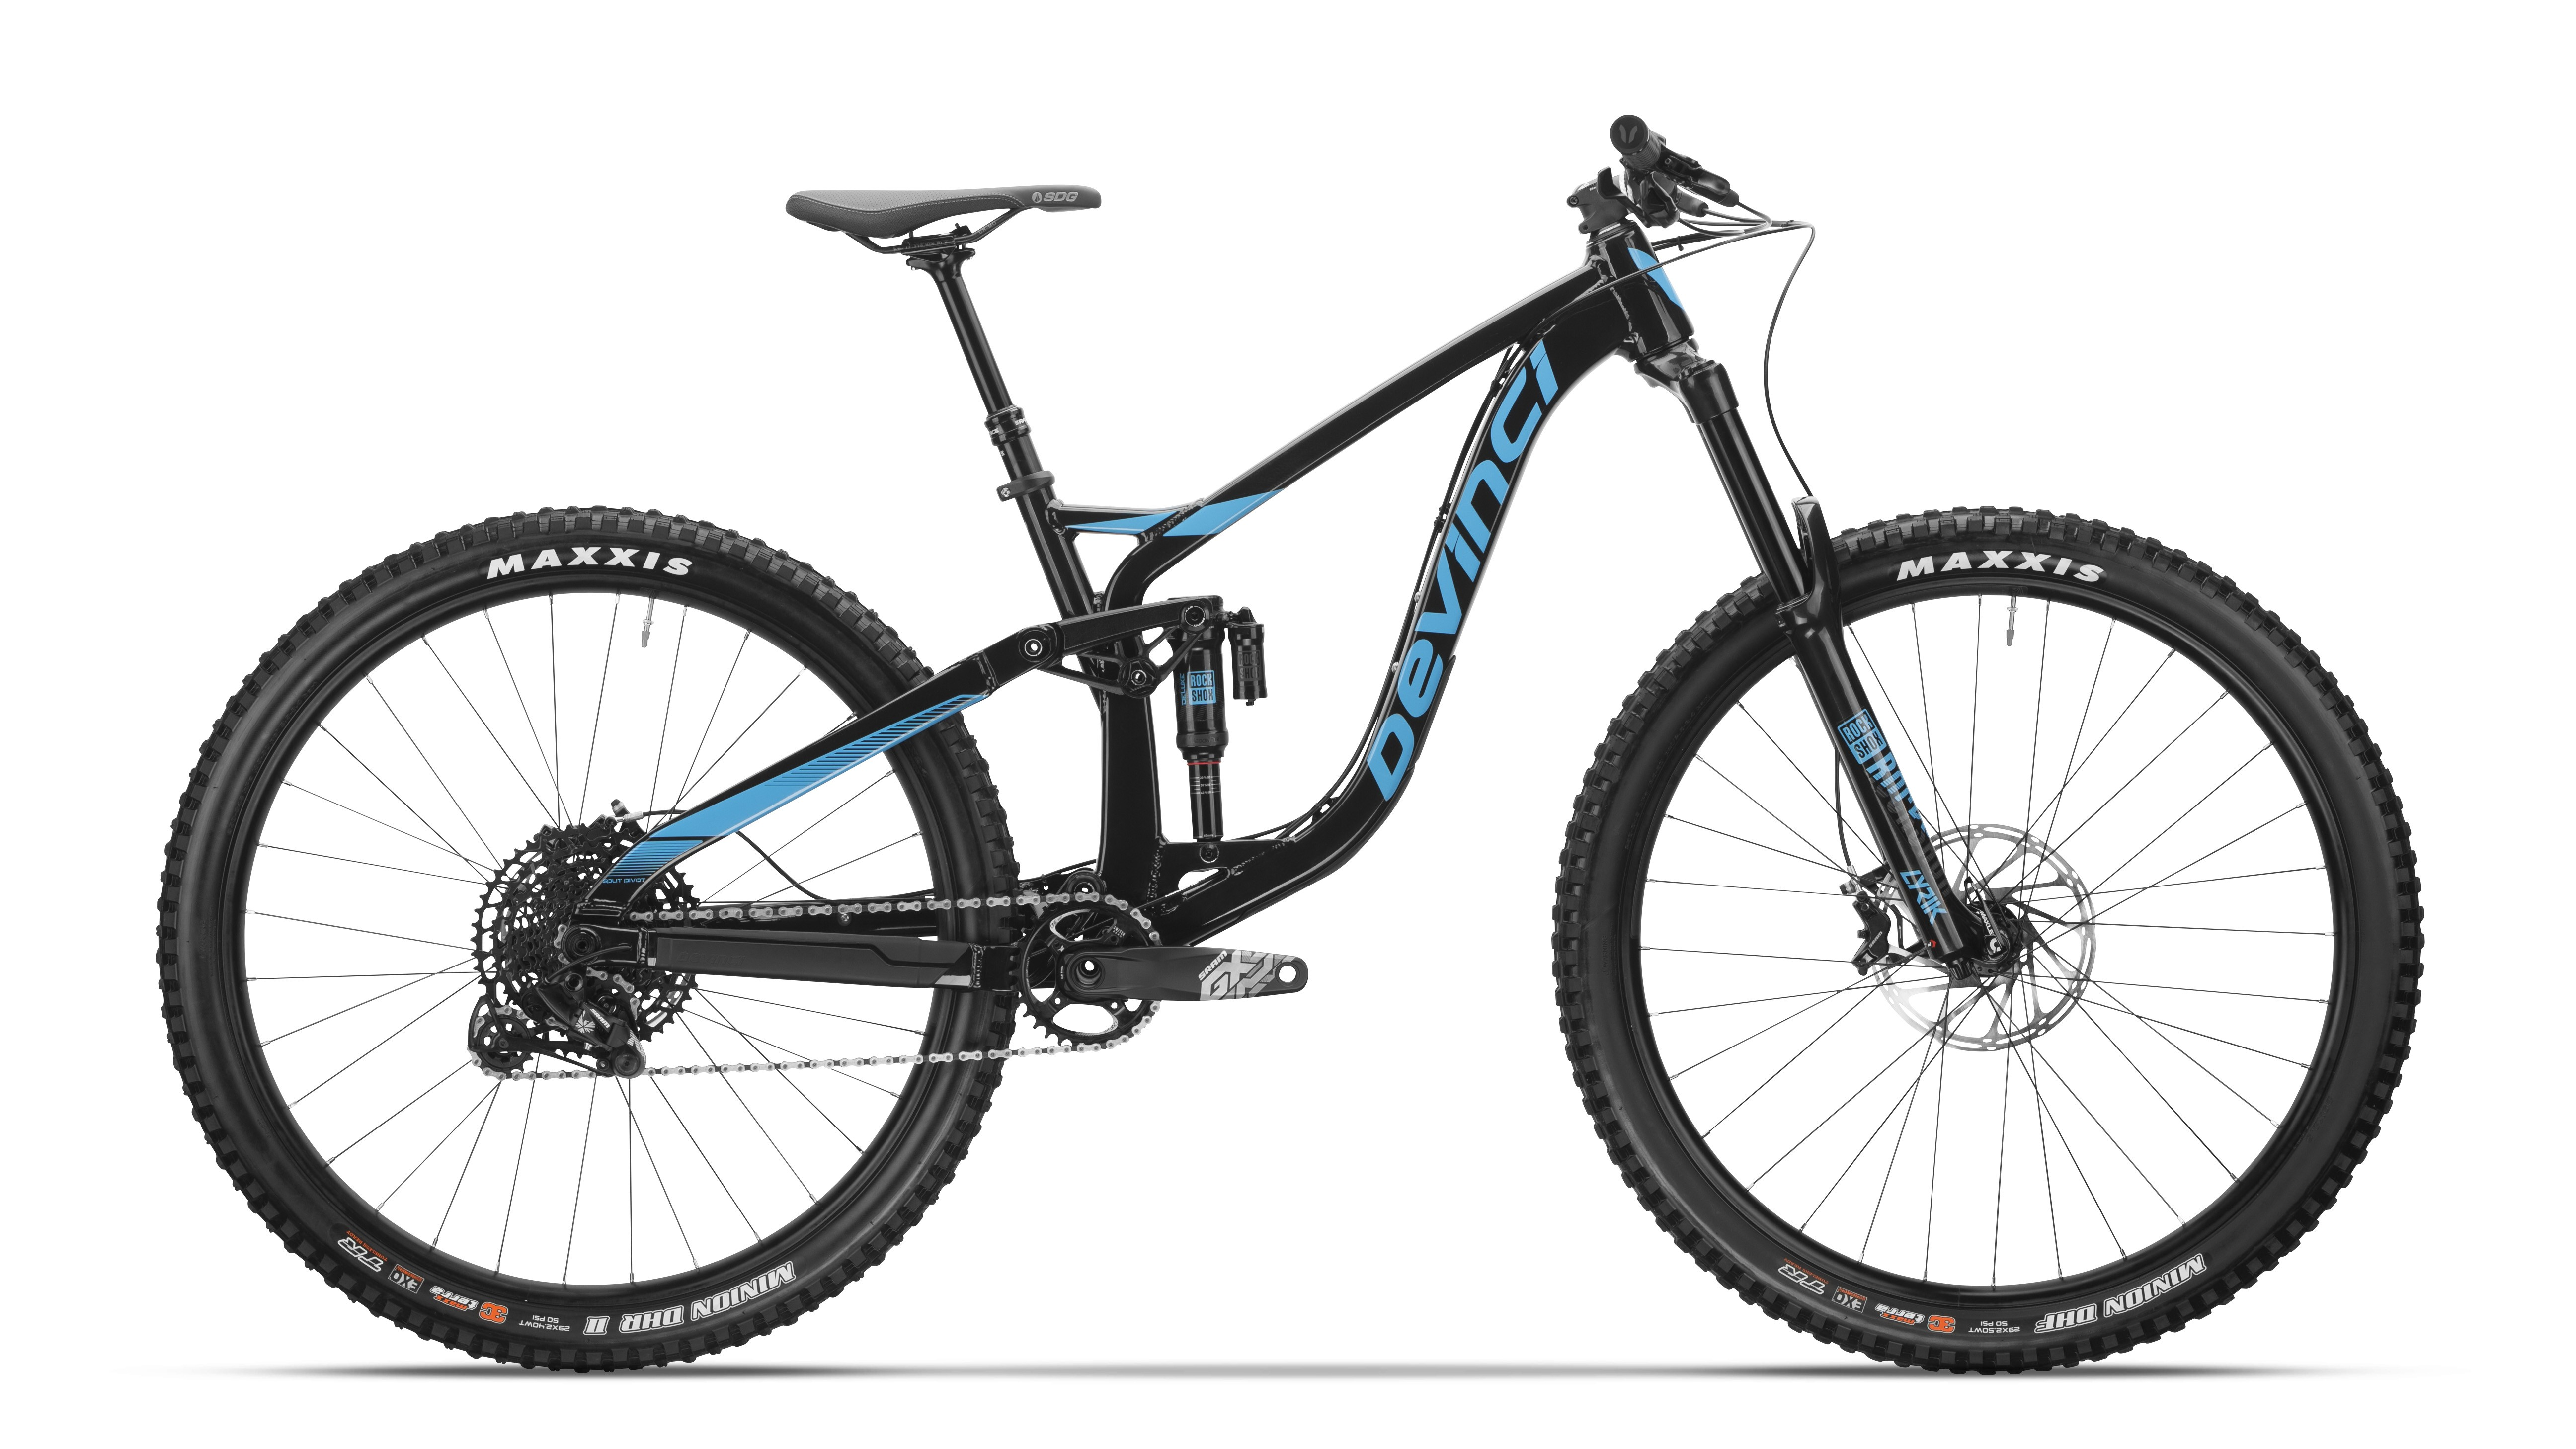 This GX Eagle spec alloy Spartan 29 looks bang on